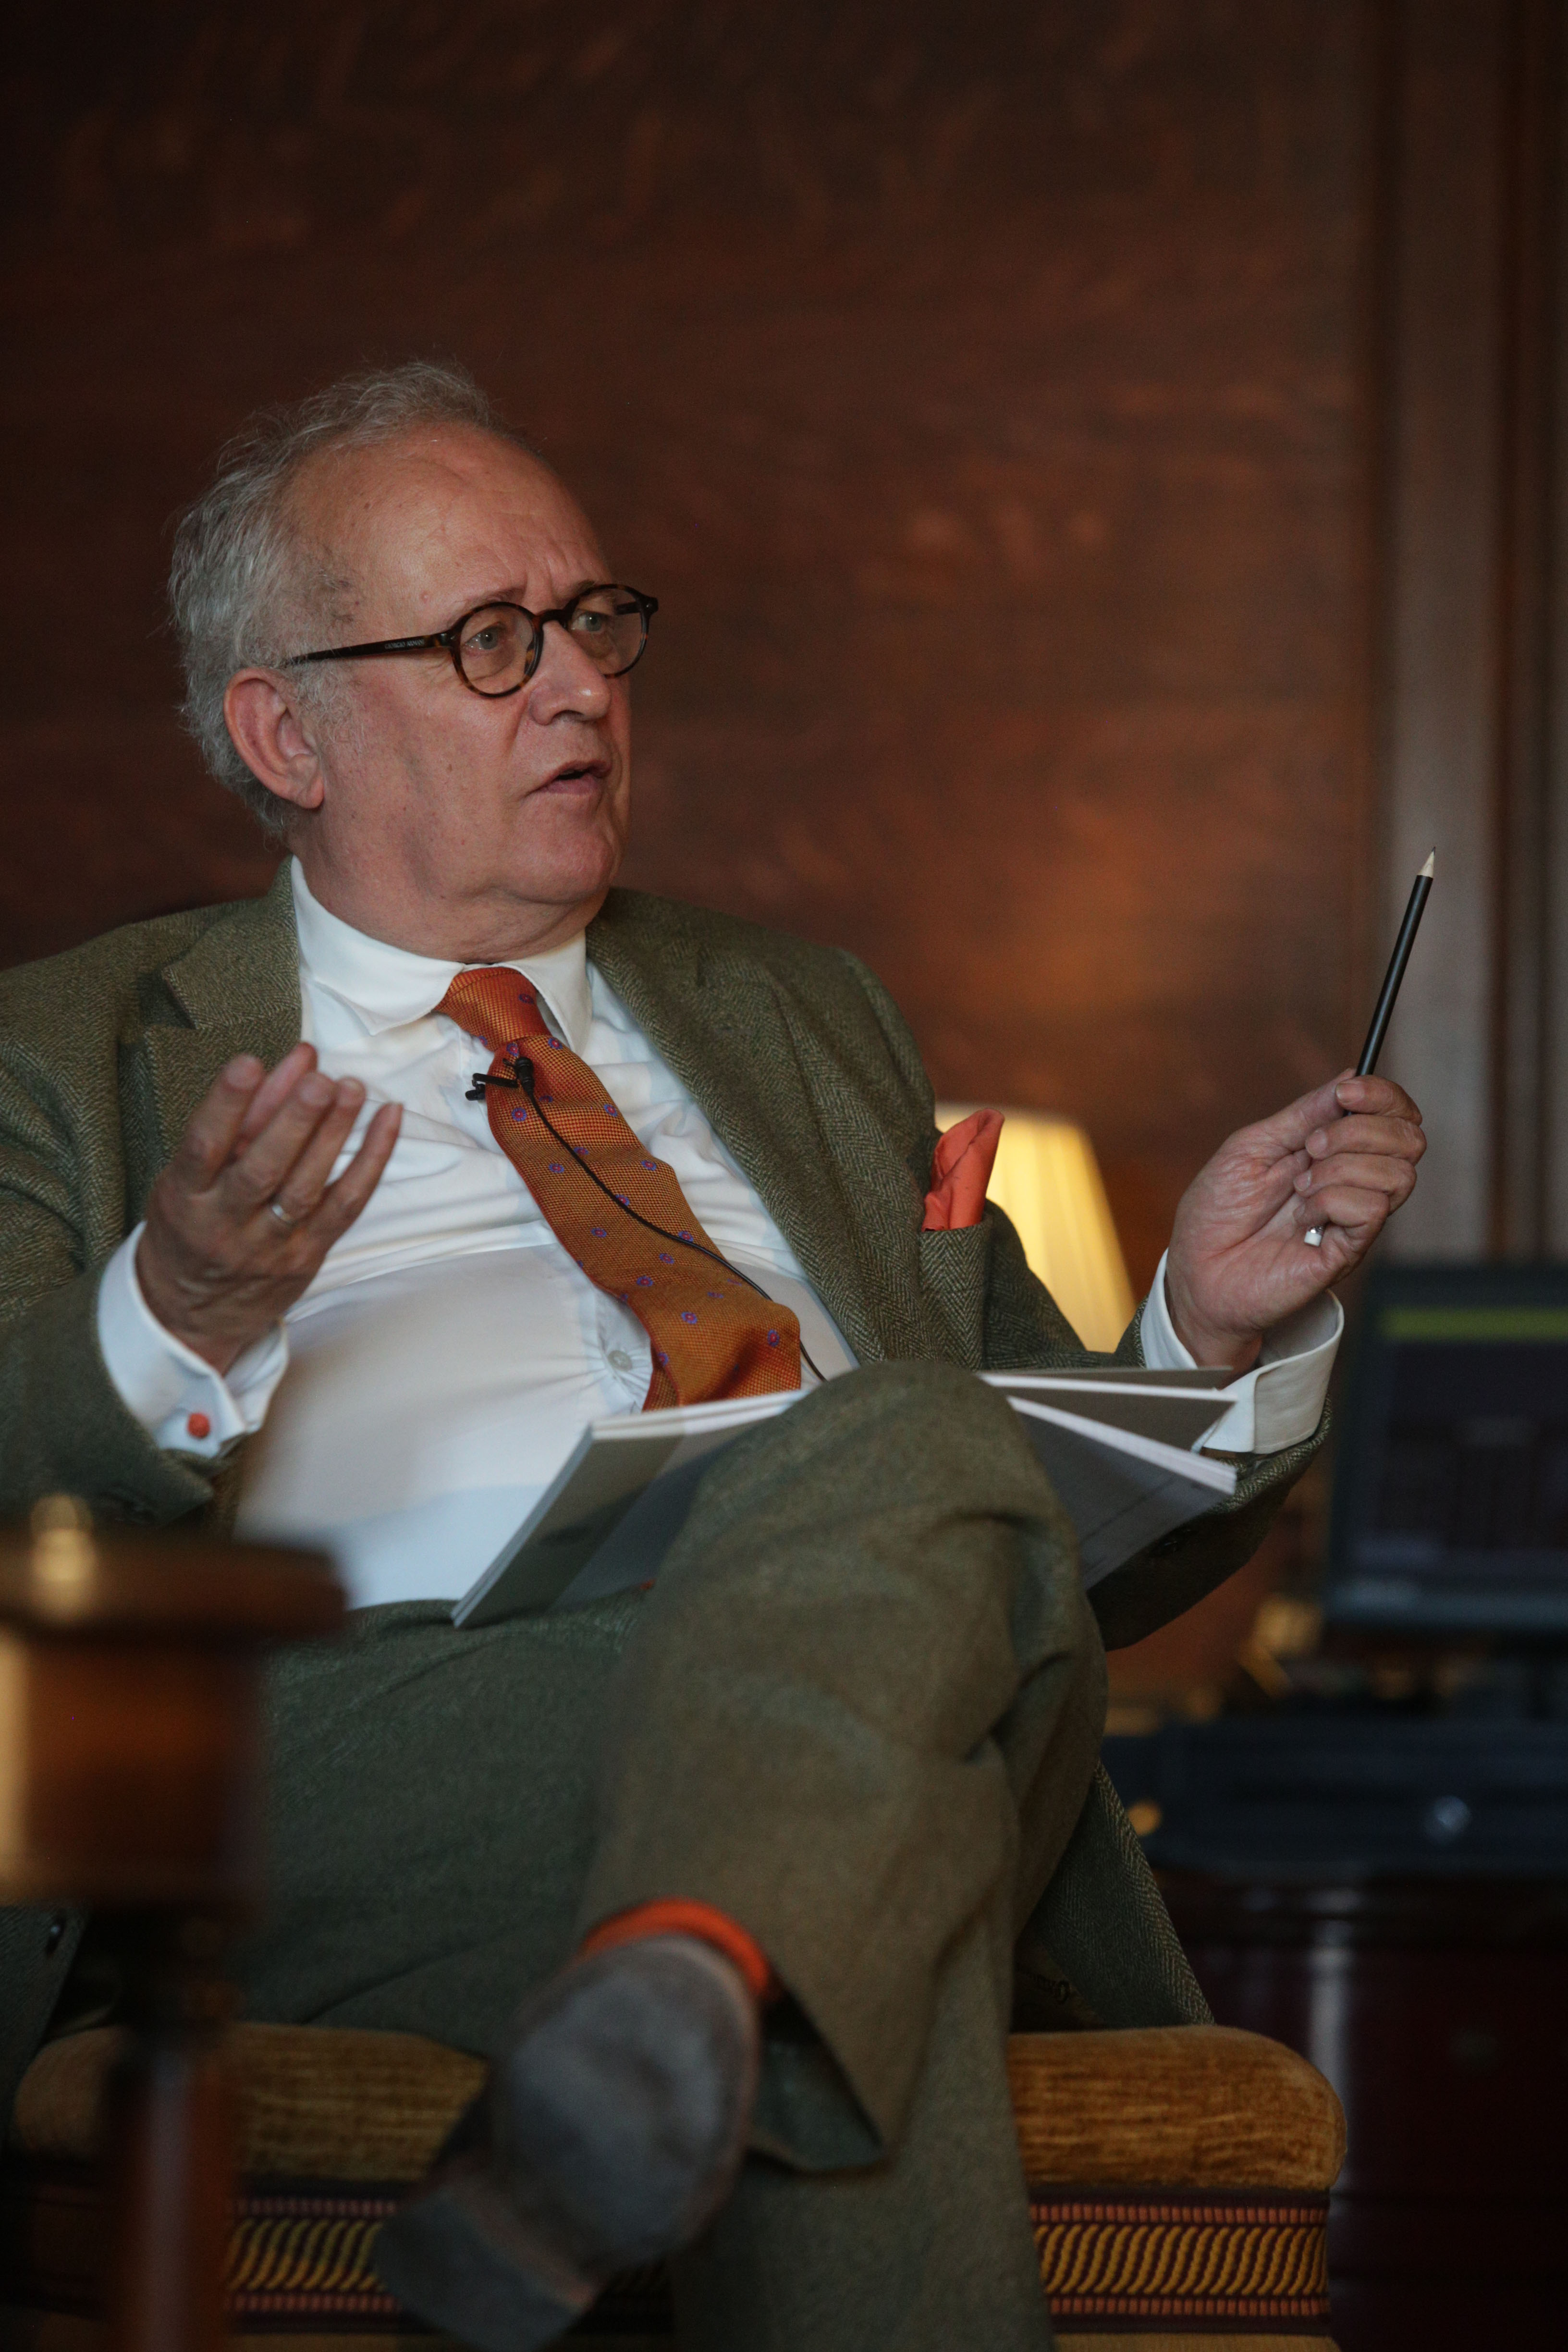 Richard Davenport-Hines, expert on the Profumo scandal, talking at Cliveden Literary Festival